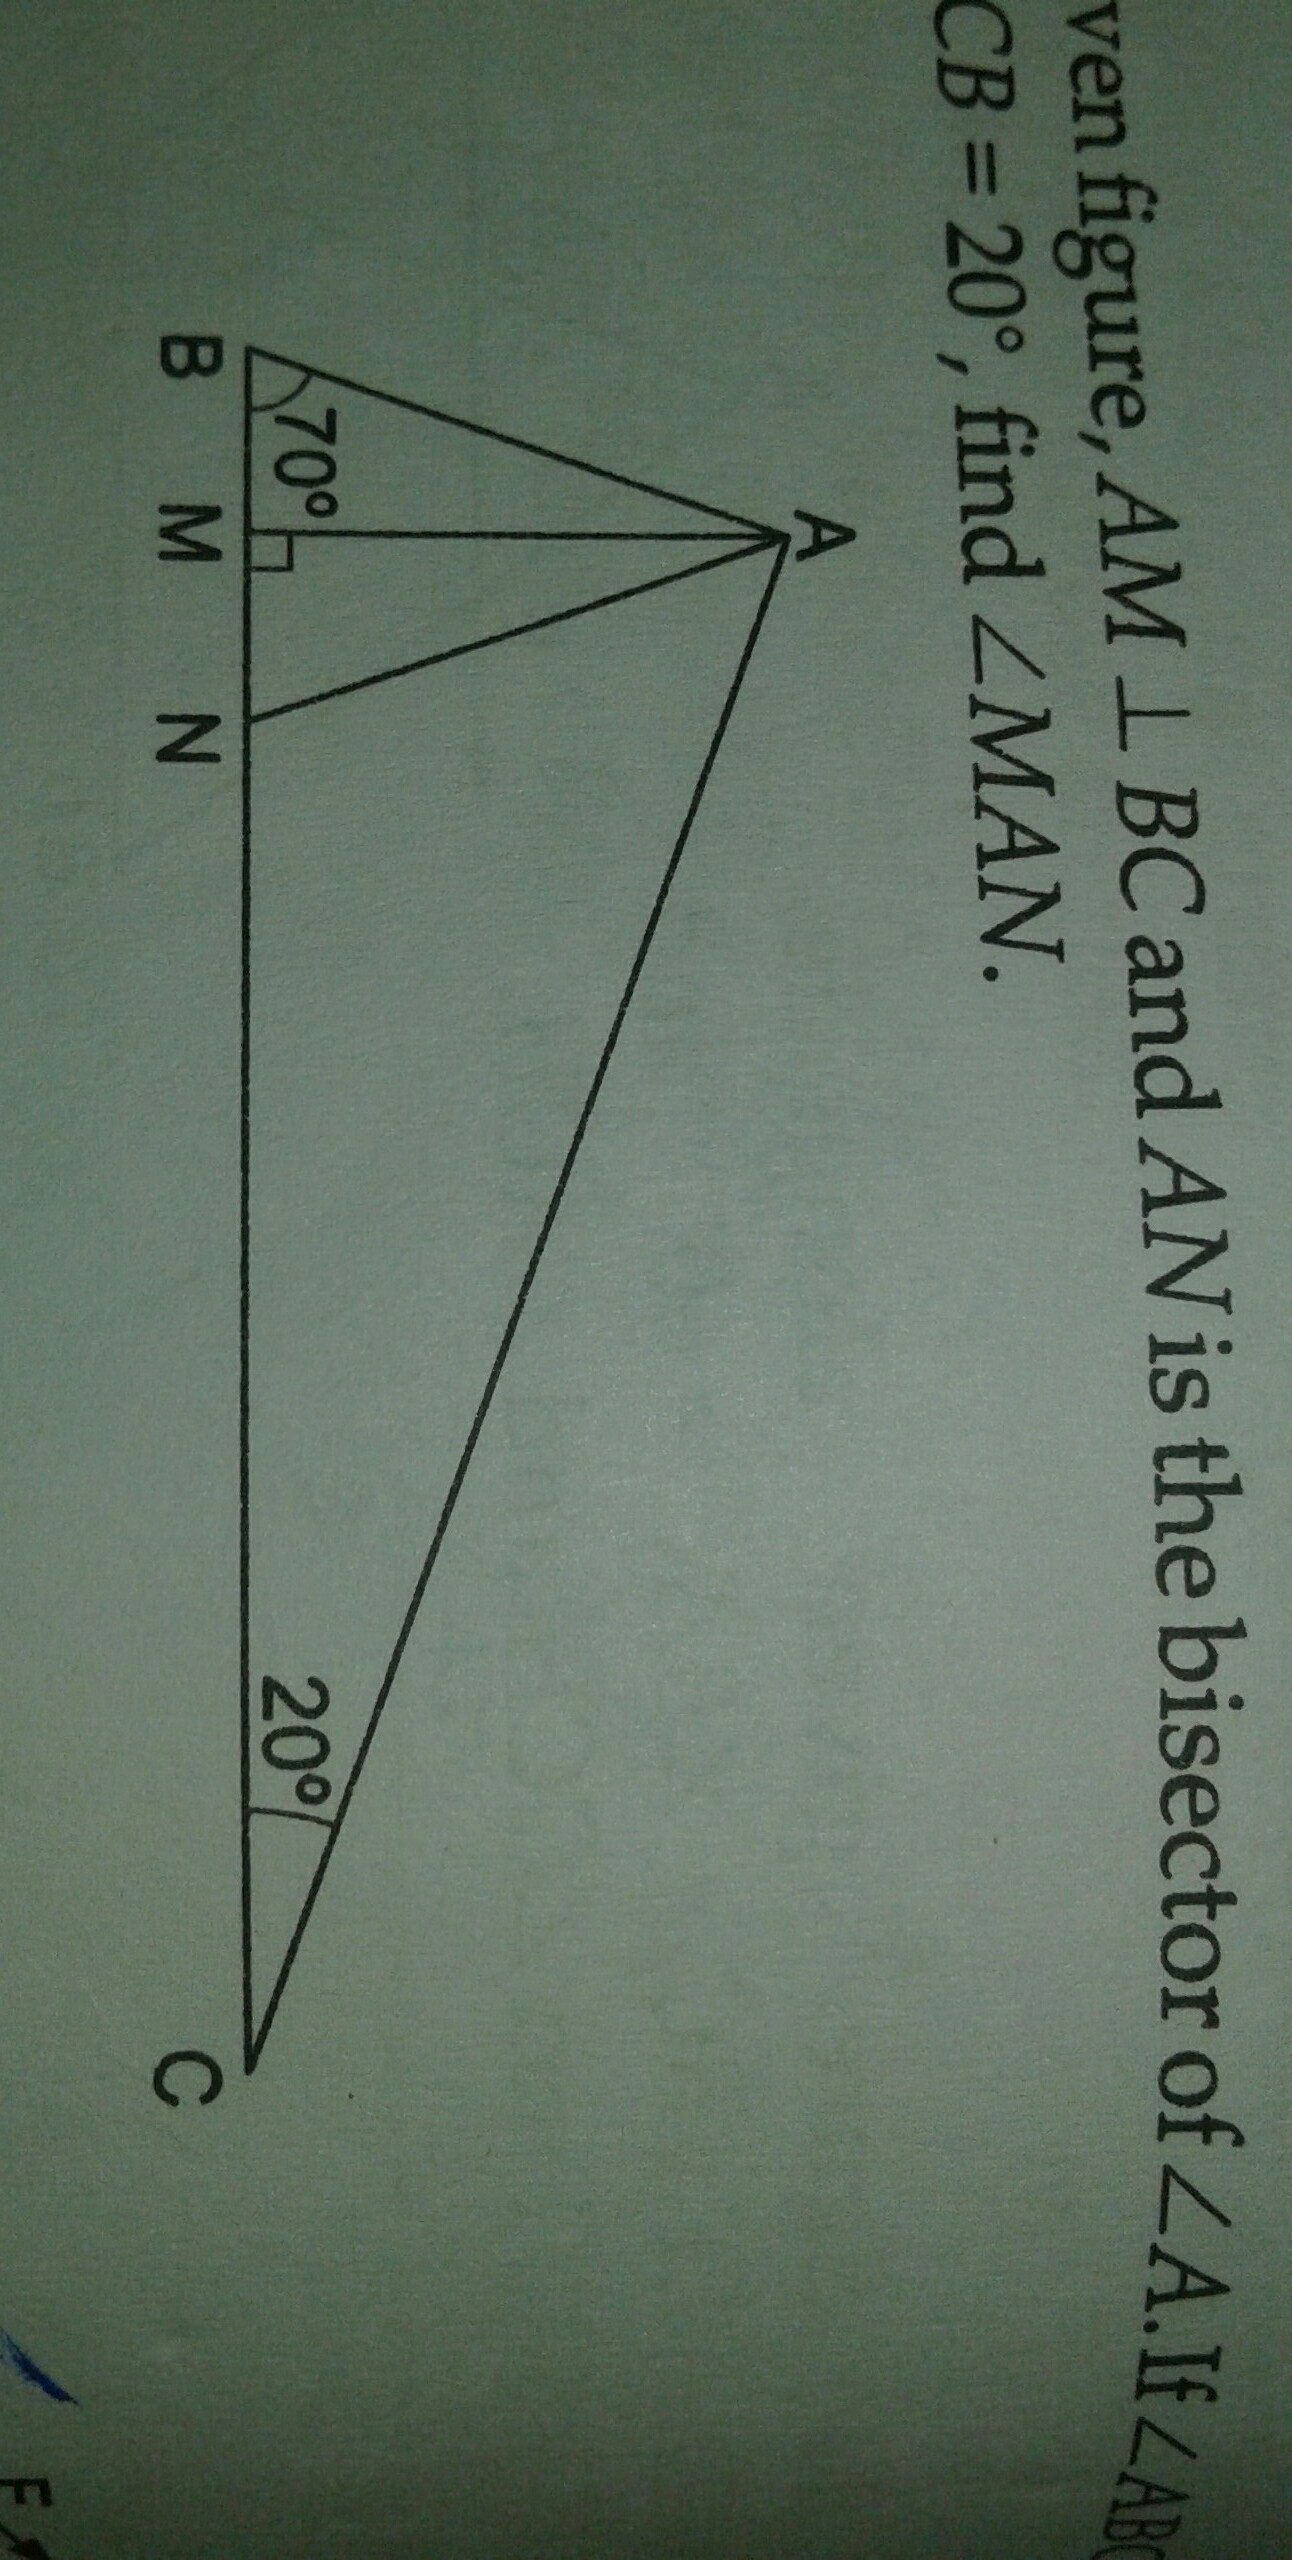 In The Given Figure Ab Is Perpendicular To BC And AD Bisector